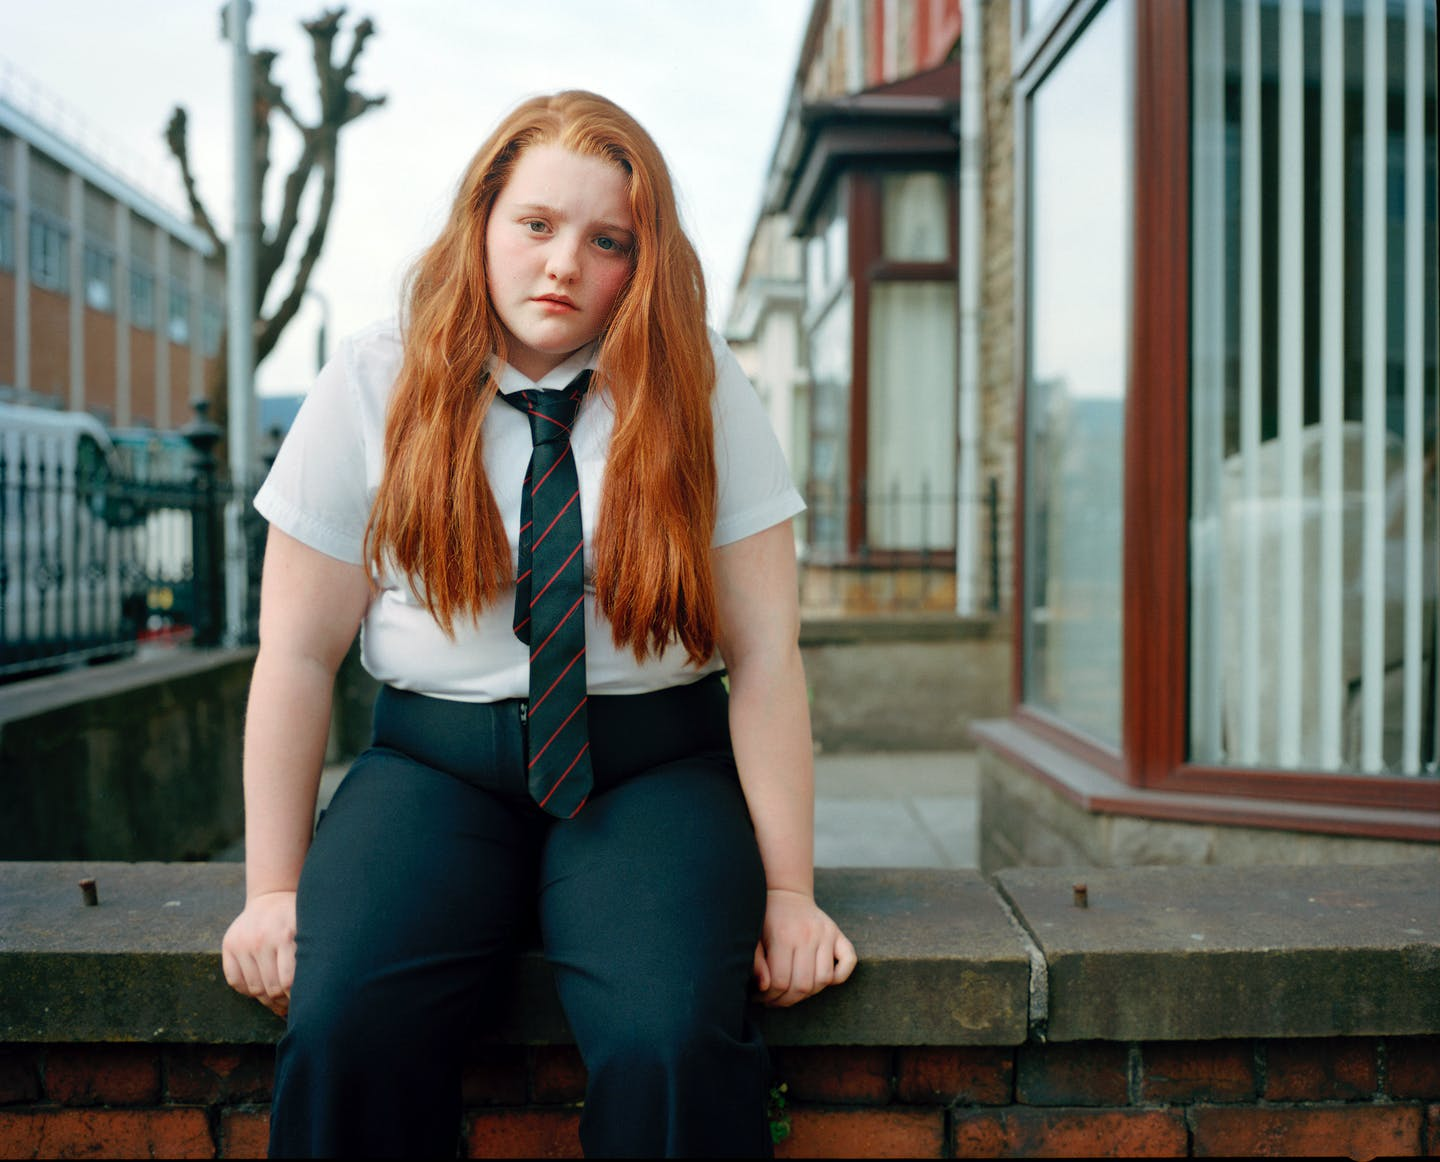 UK Teens Share What Its Like to Be Young and Obese | Topic